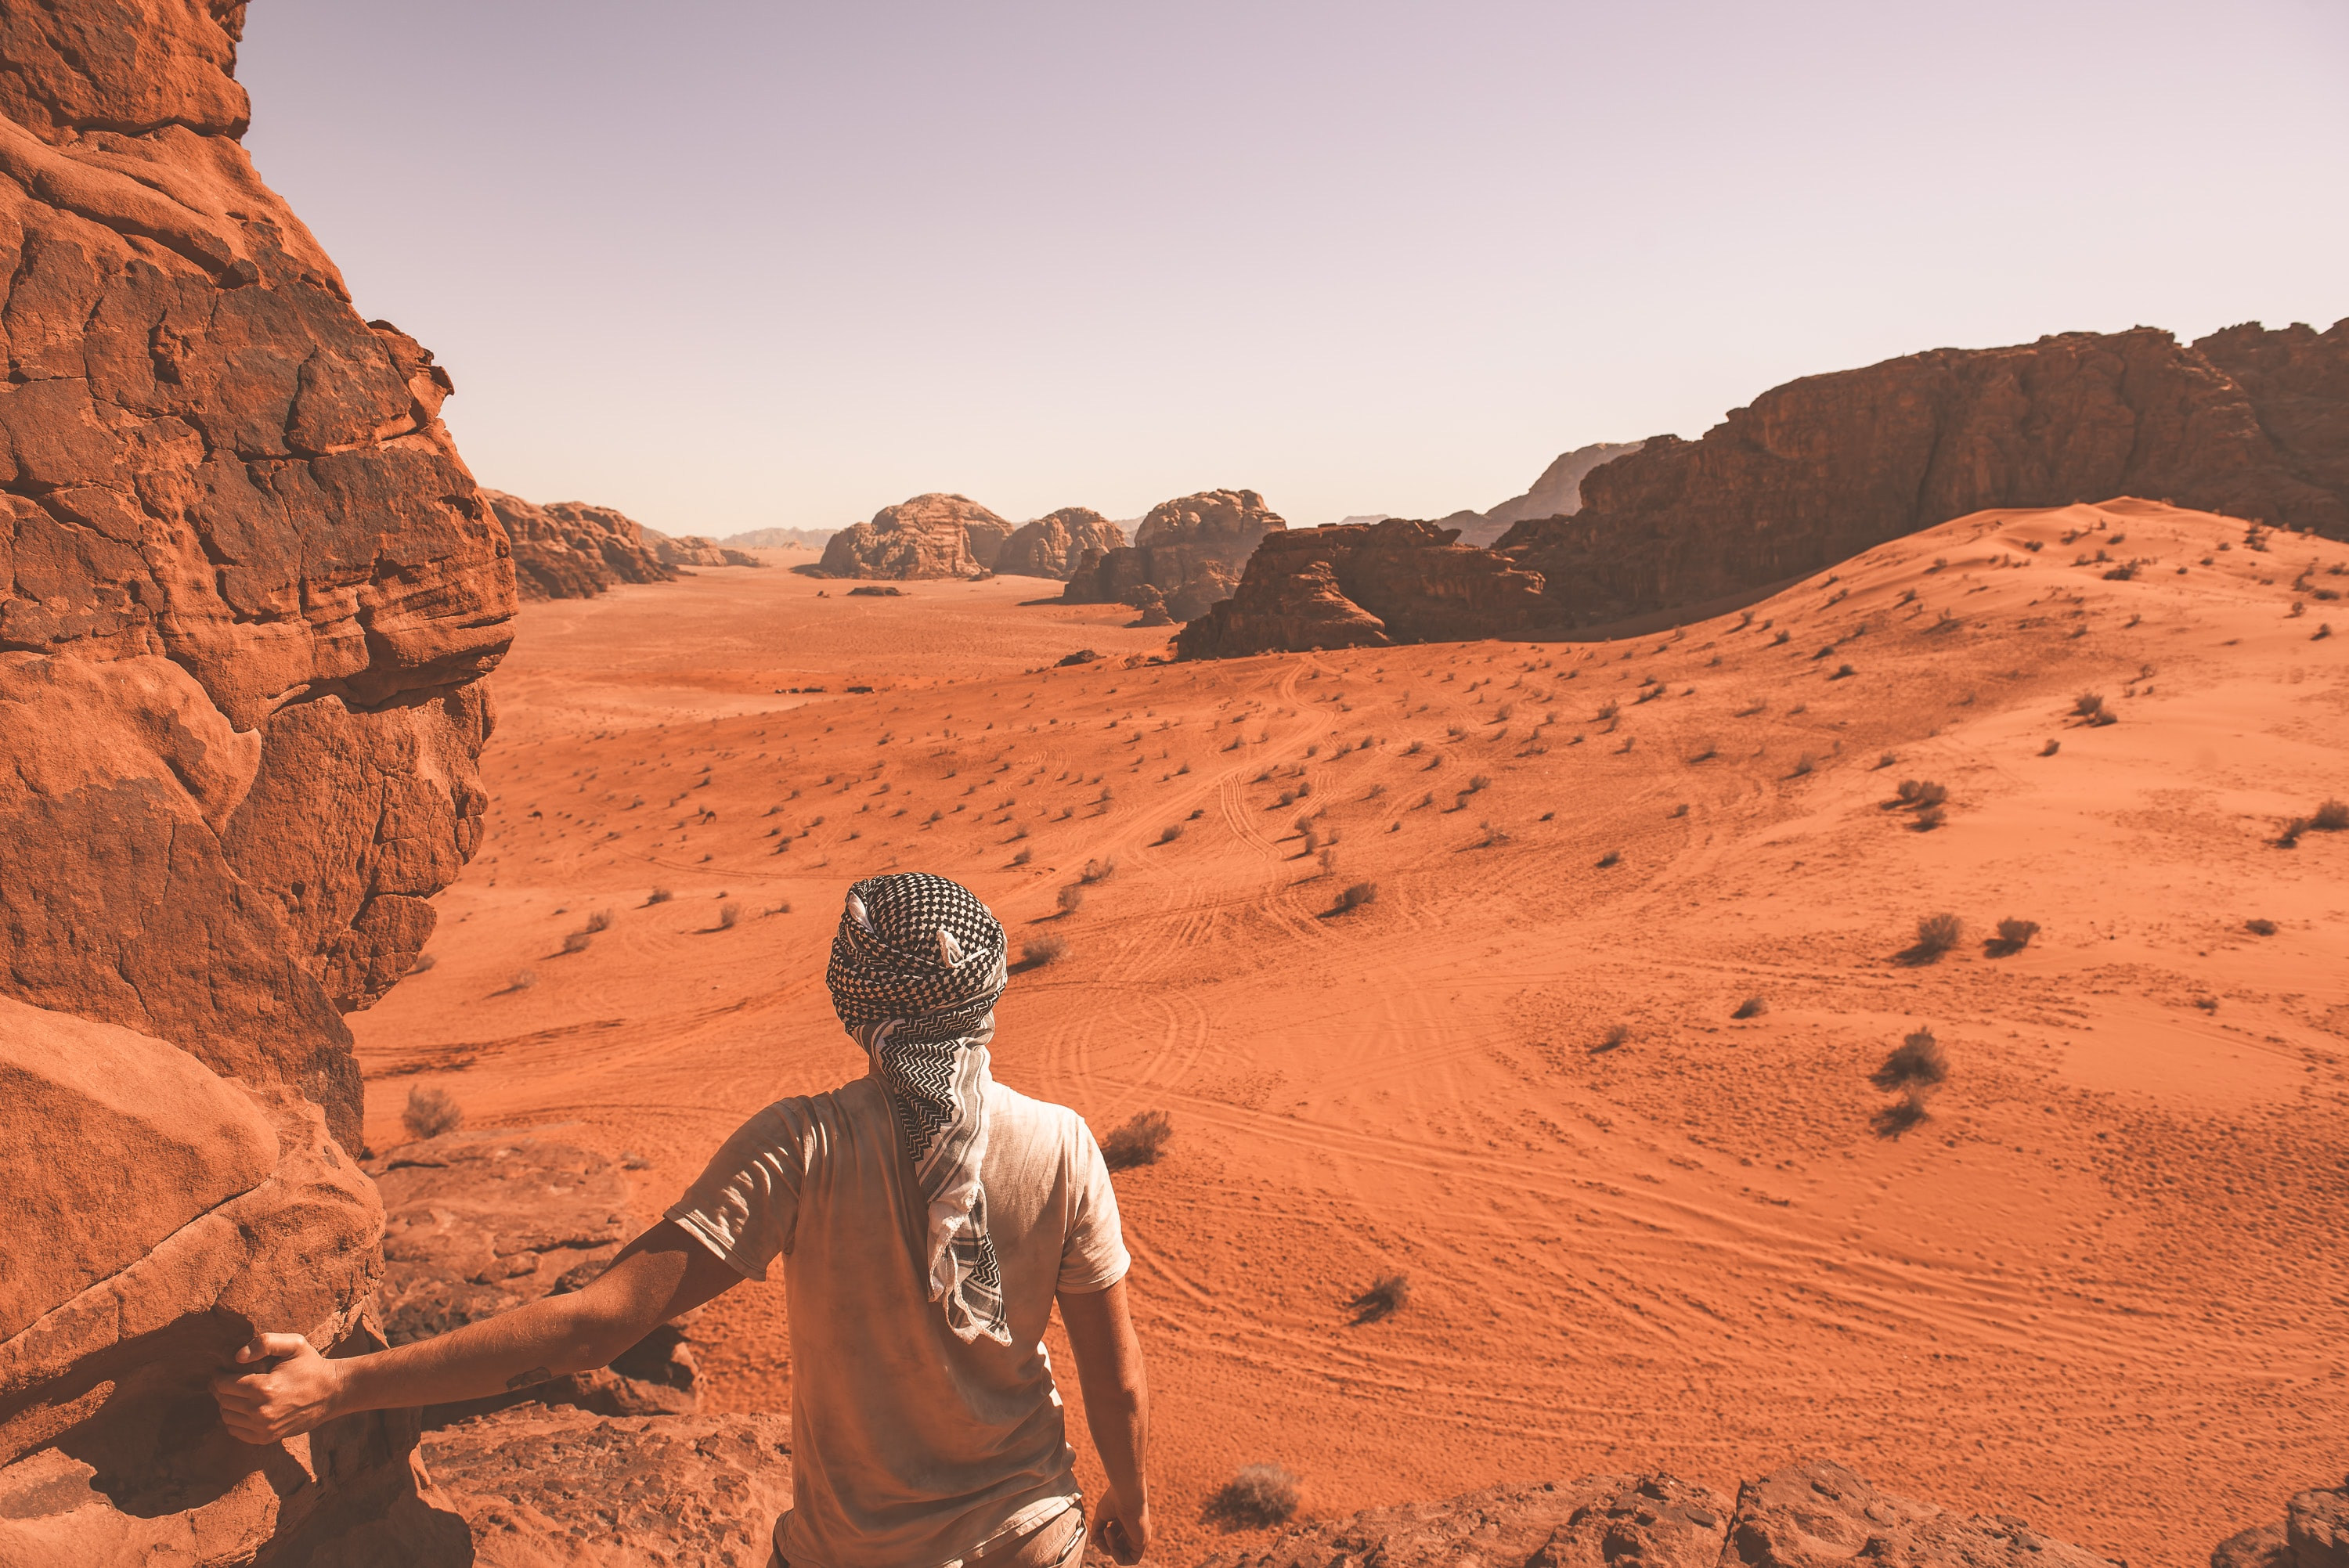 Hot hikes through the desert mountains of Wadi Rum Village